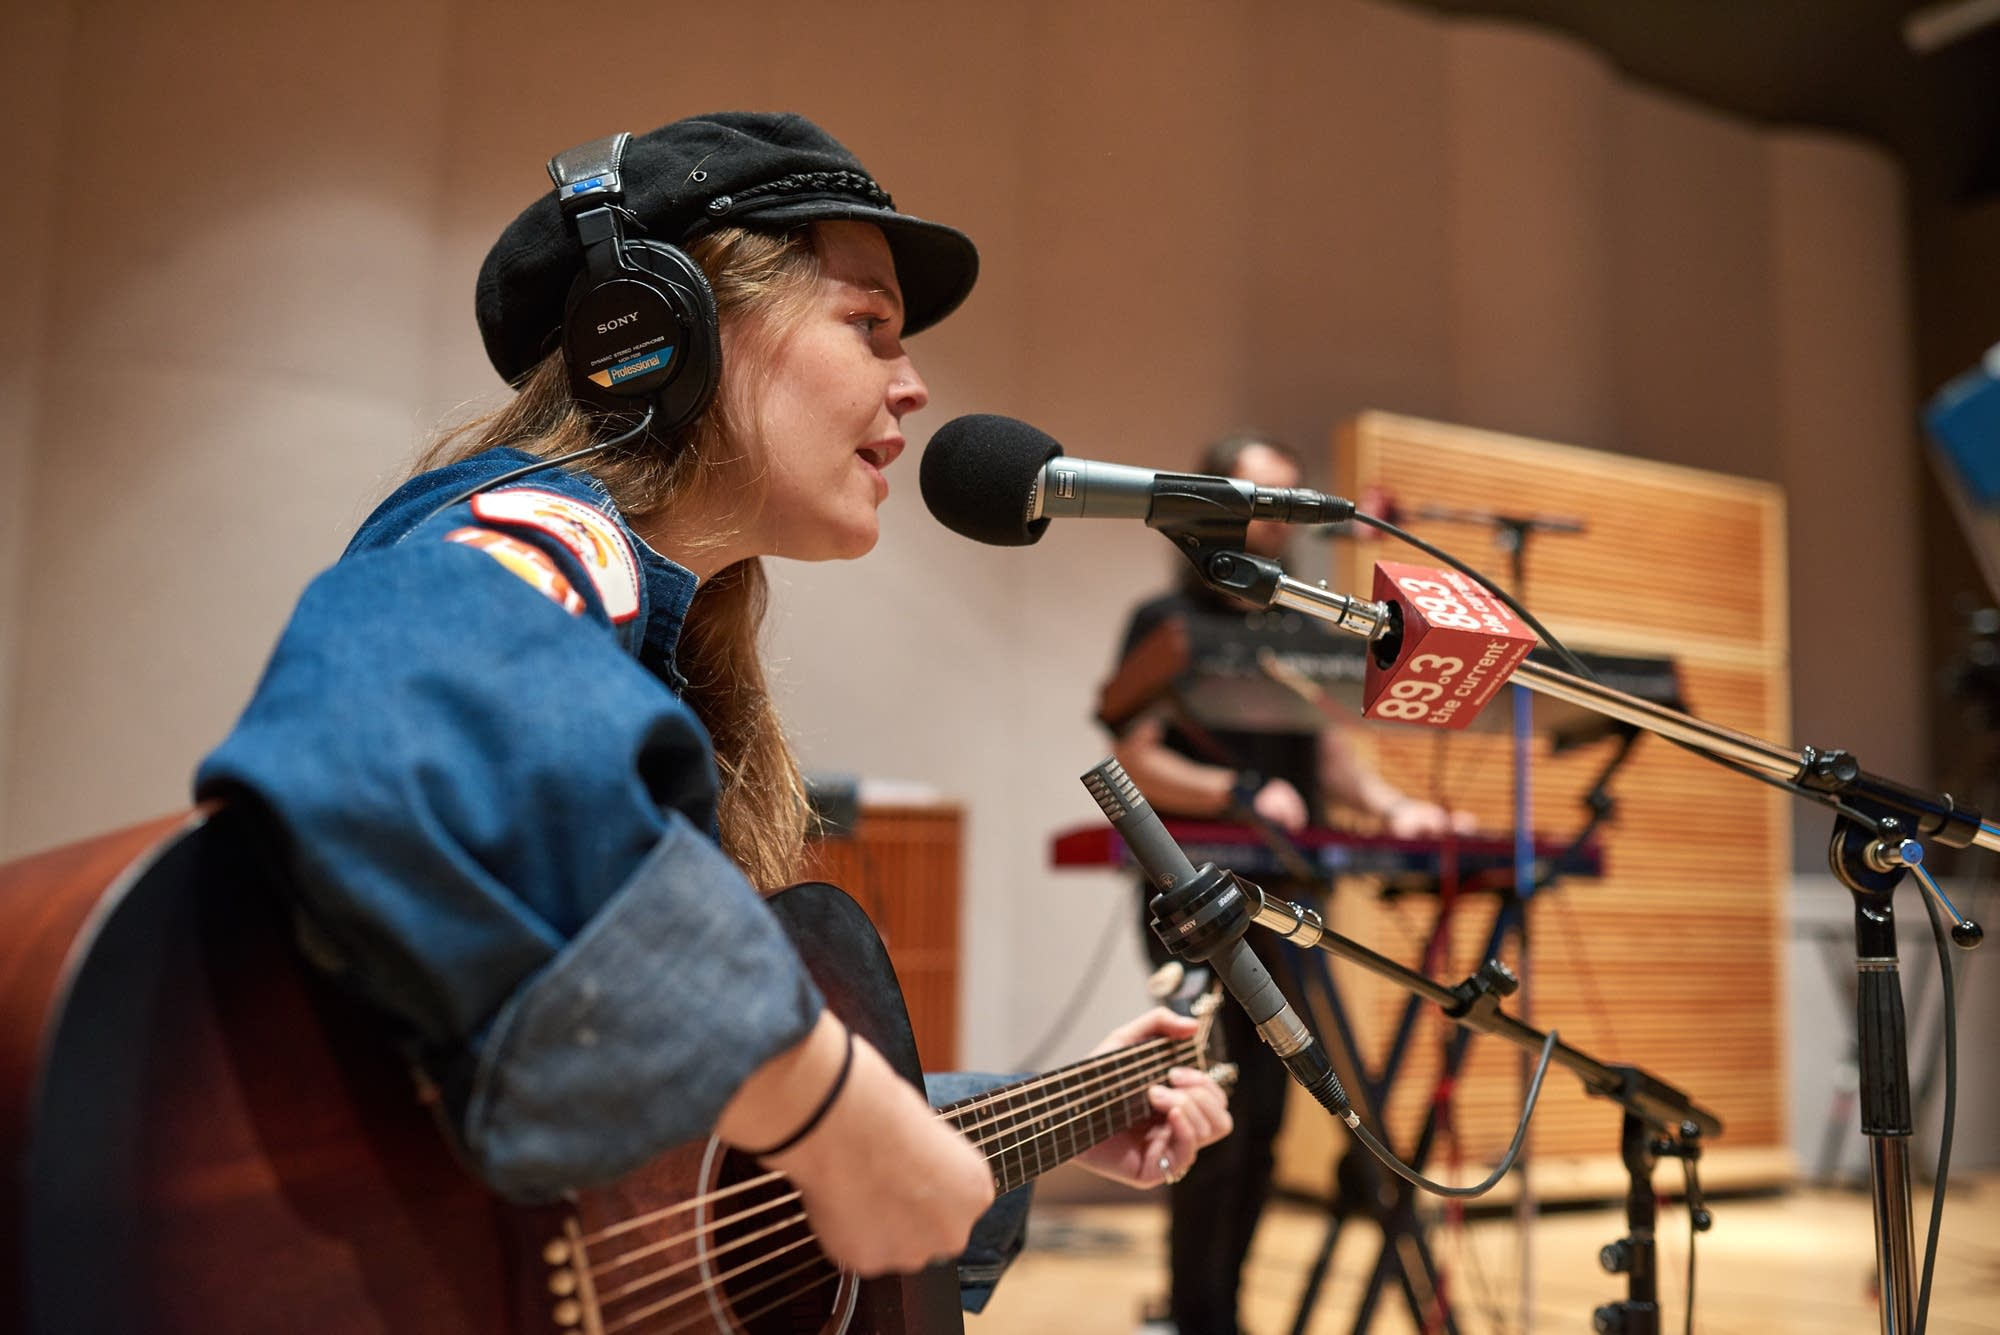 Maggie Rogers performs in The Current studio